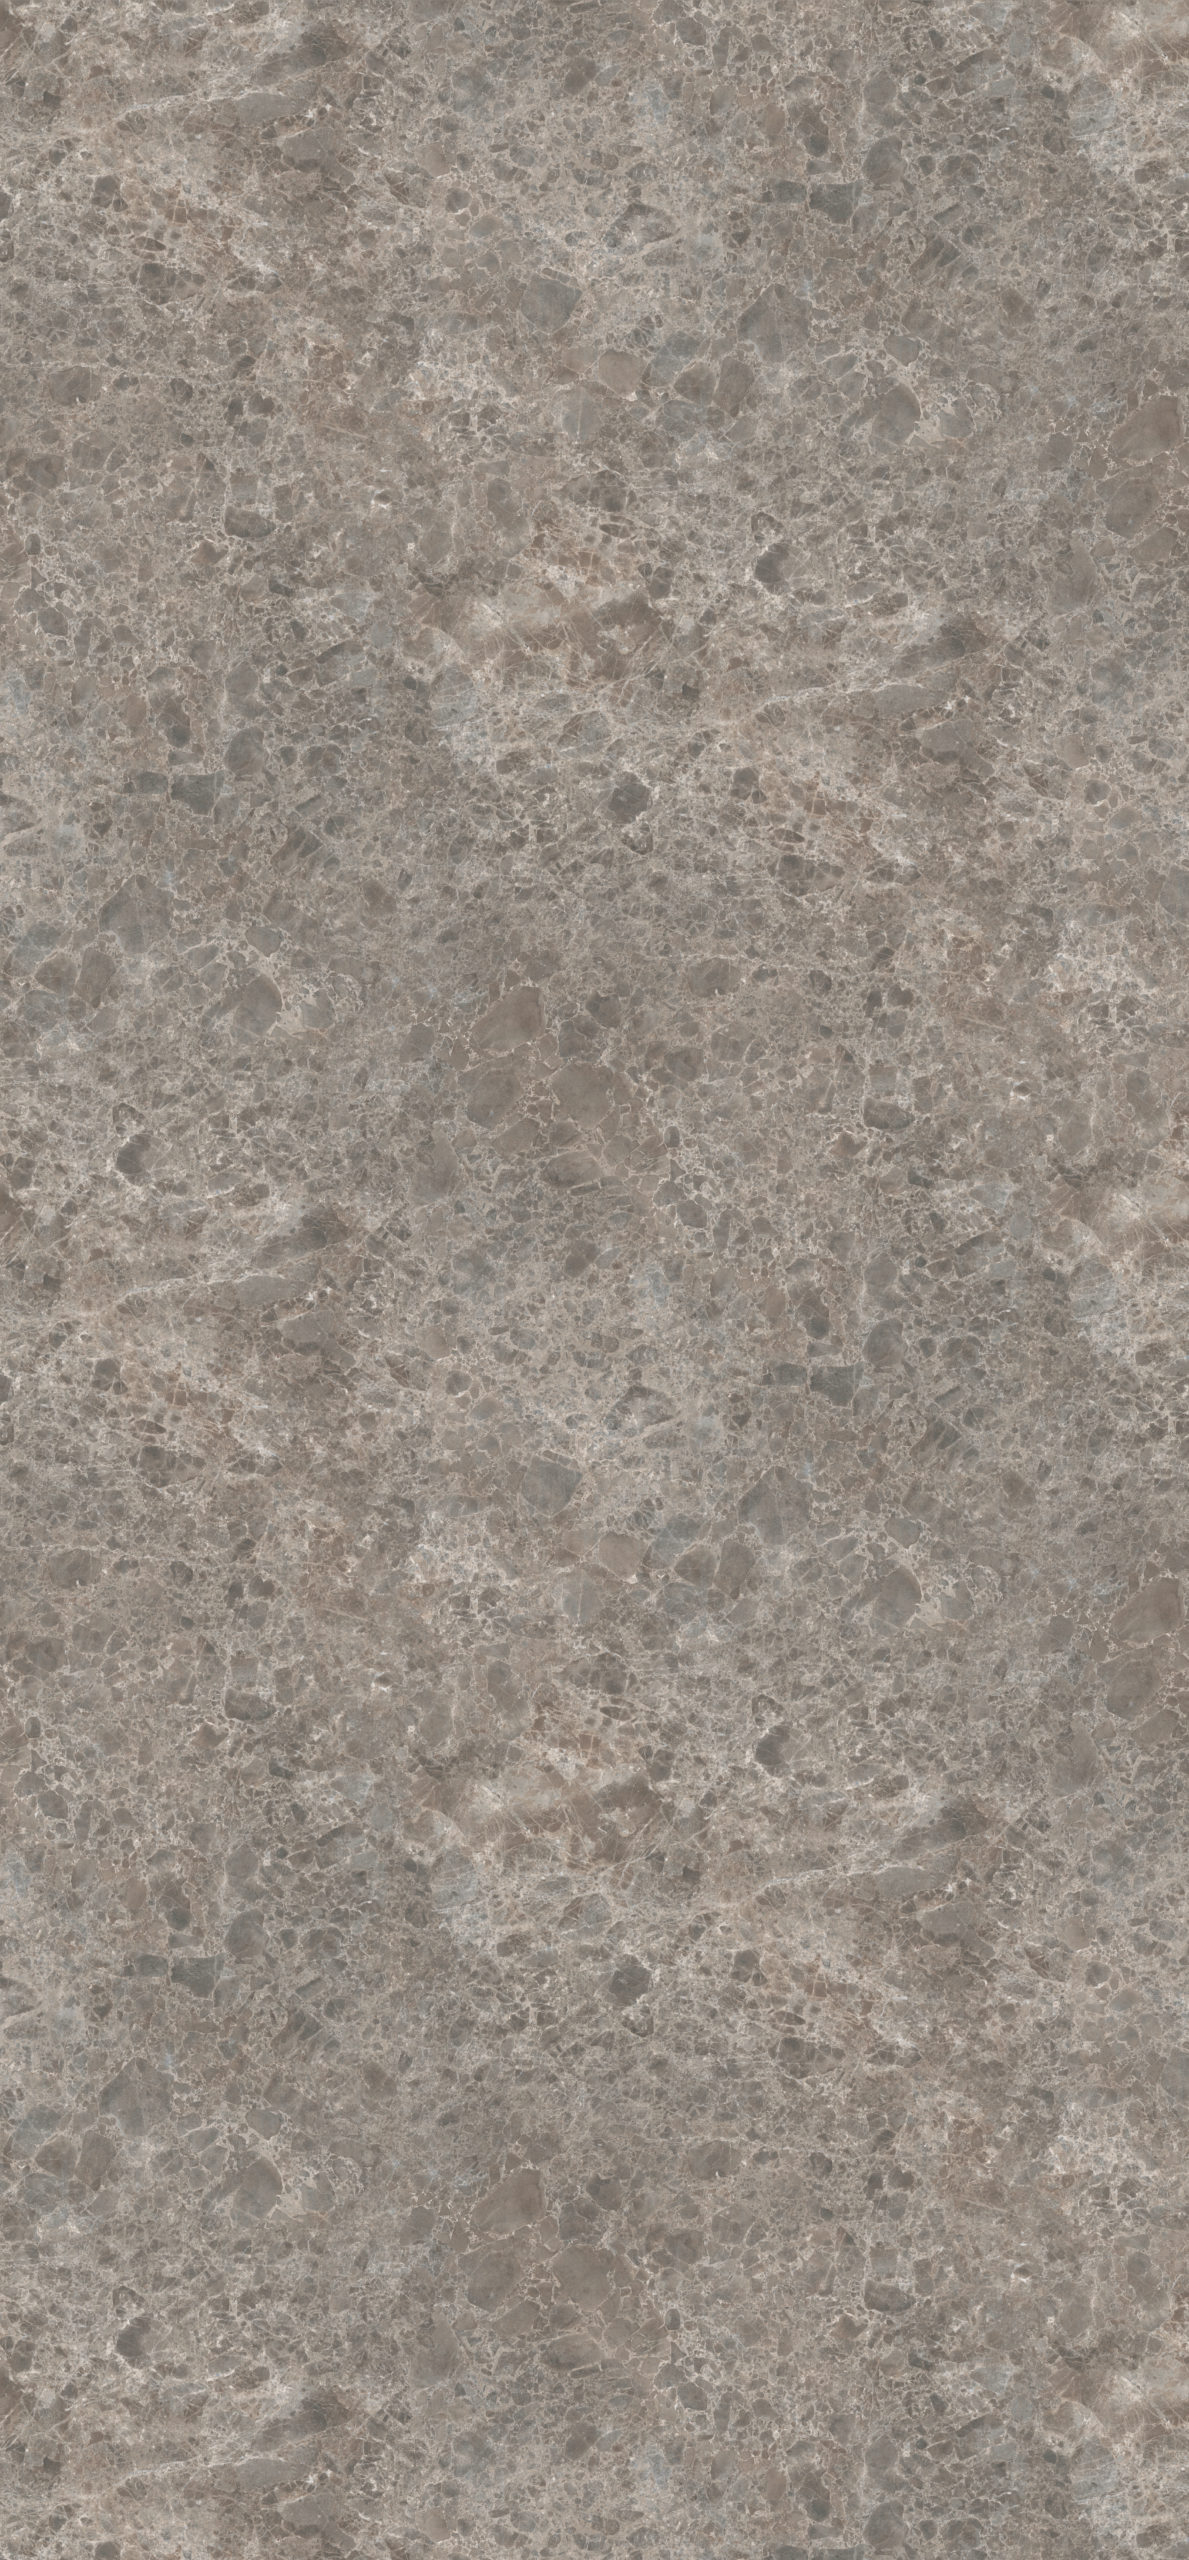 Egger Grey Siena Marble Square Edge Worktops Online